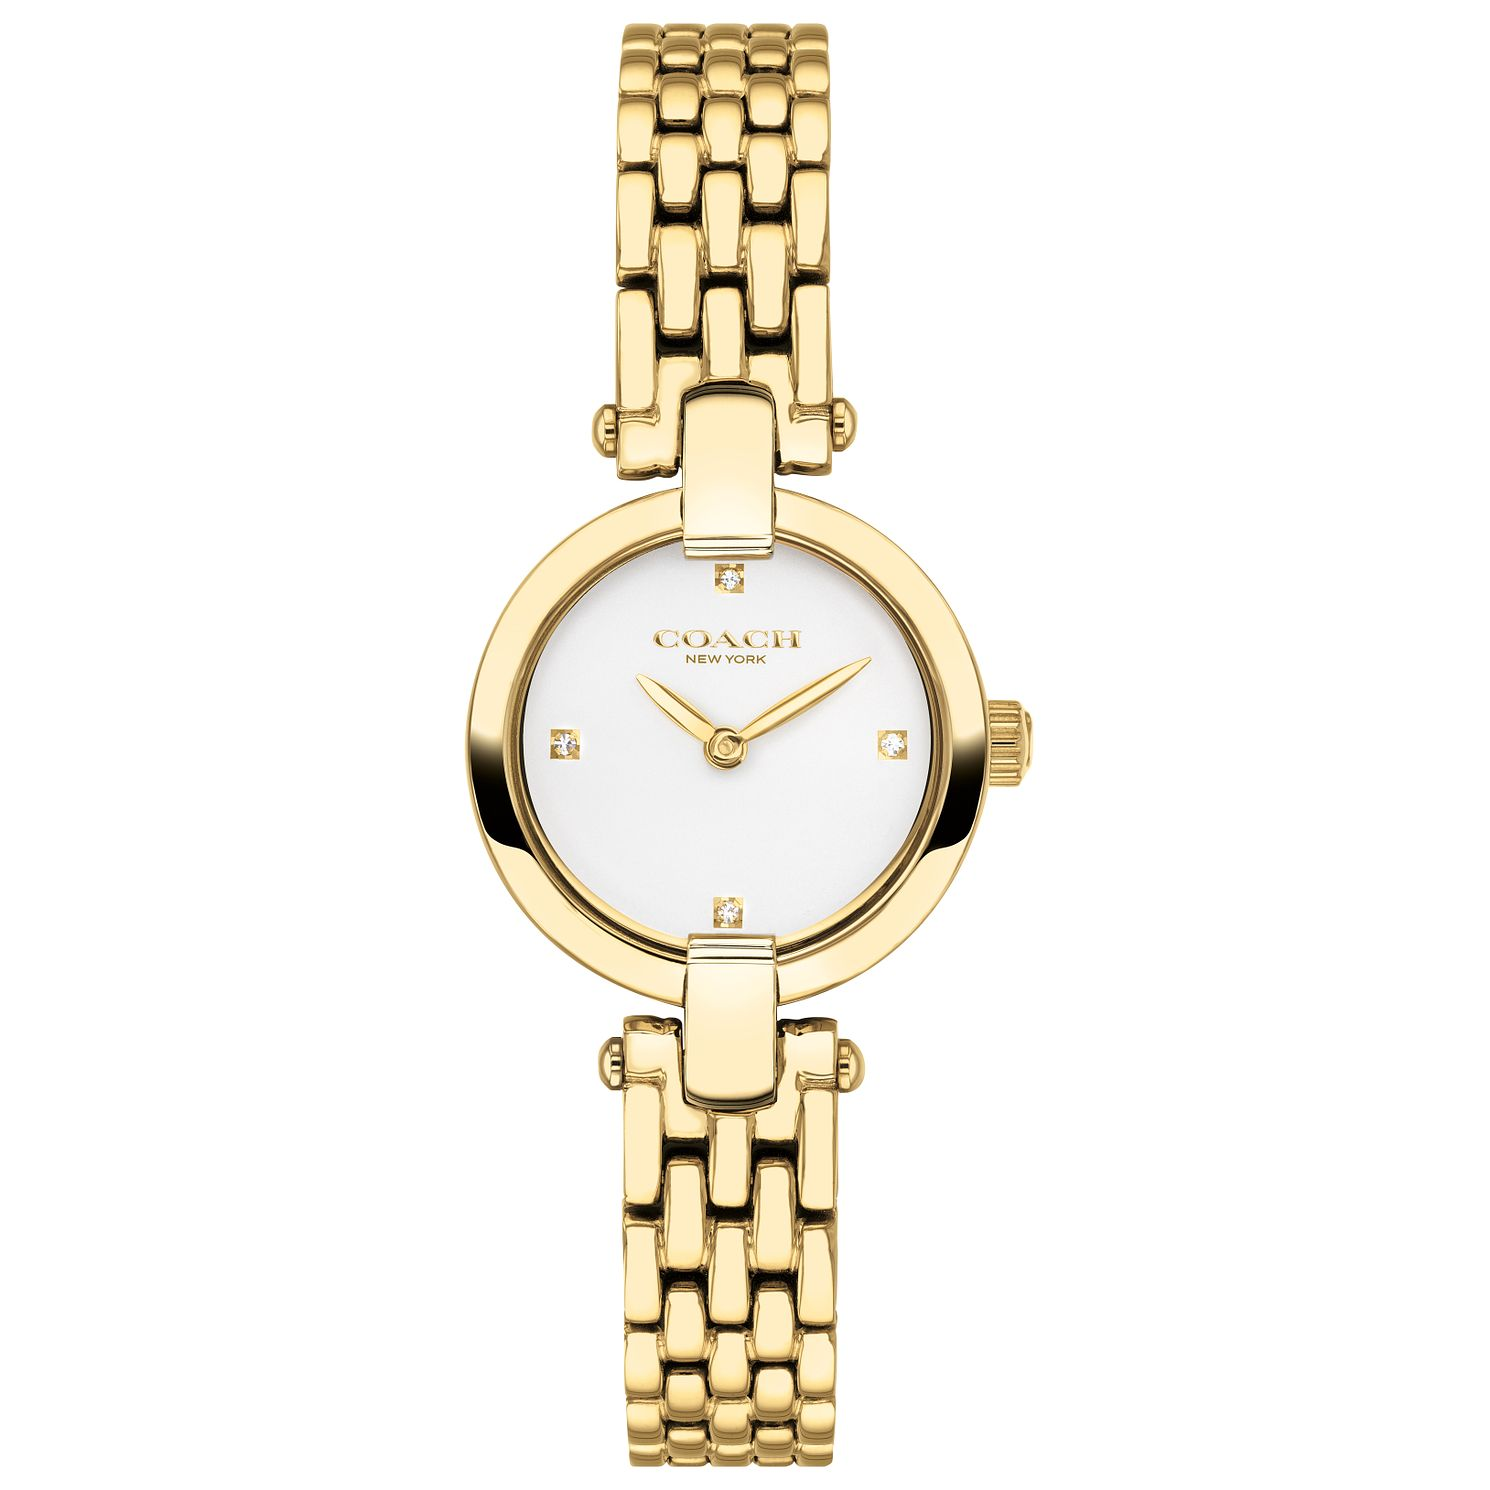 Coach Chrystie Ladies' Yellow Gold Tone Bracelet Watch - Product number 2622017